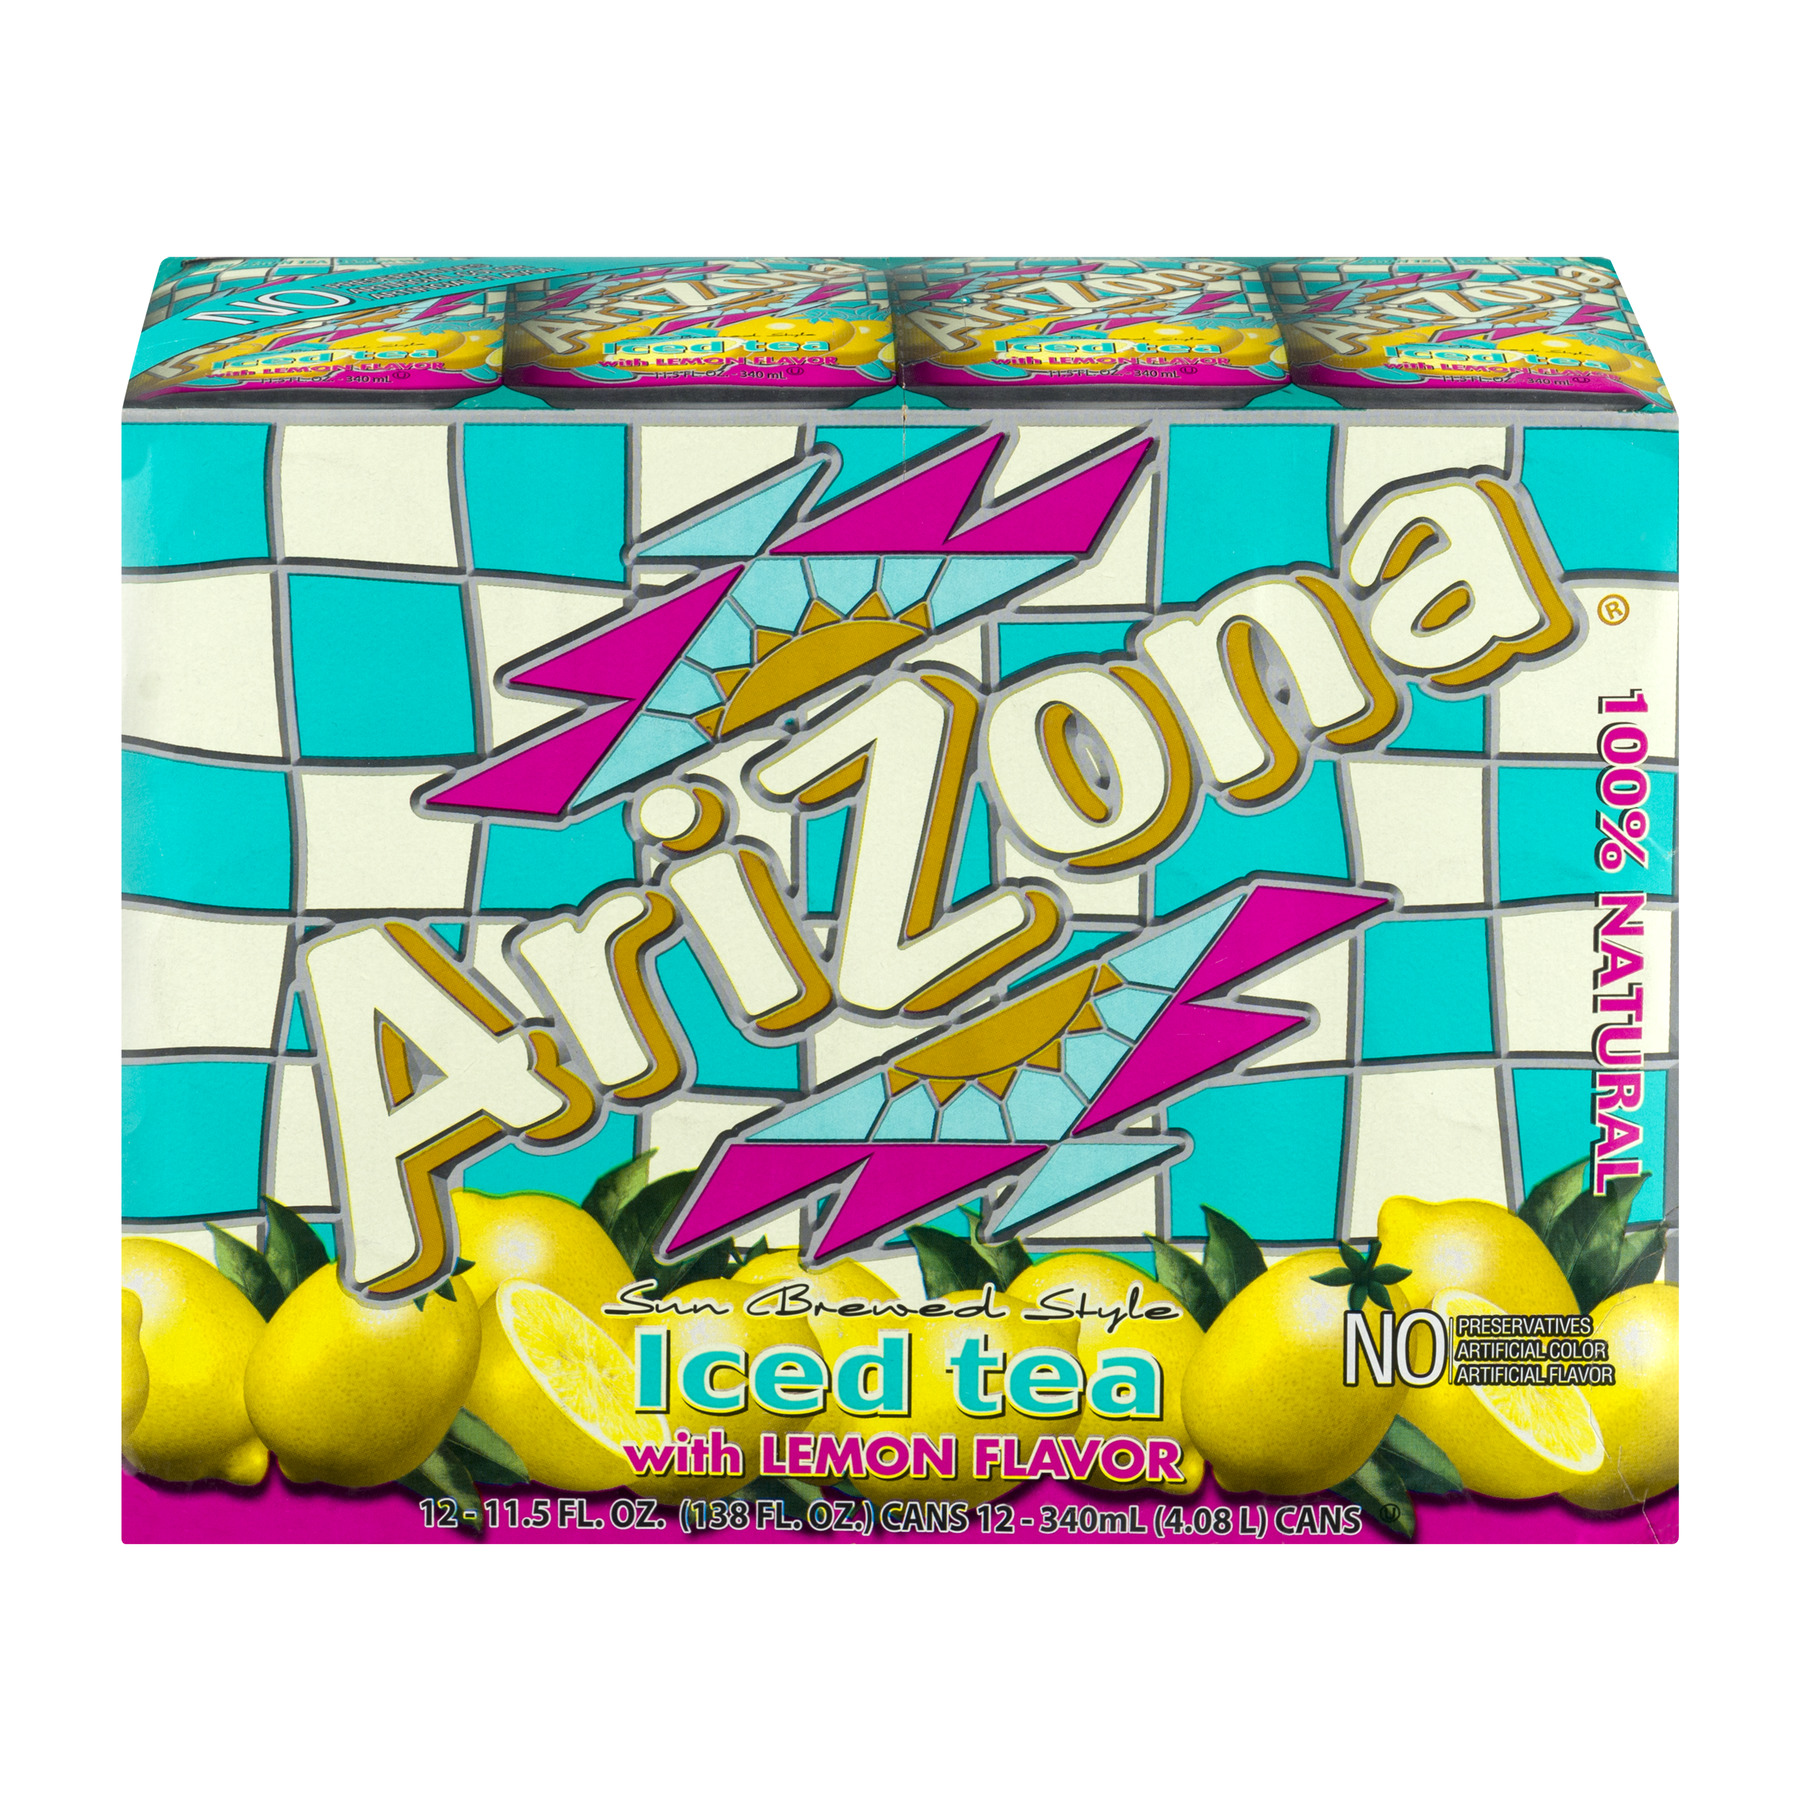 Arizona Iced Tea with Lemon Flavor - 12 CT12.0 FL OZ